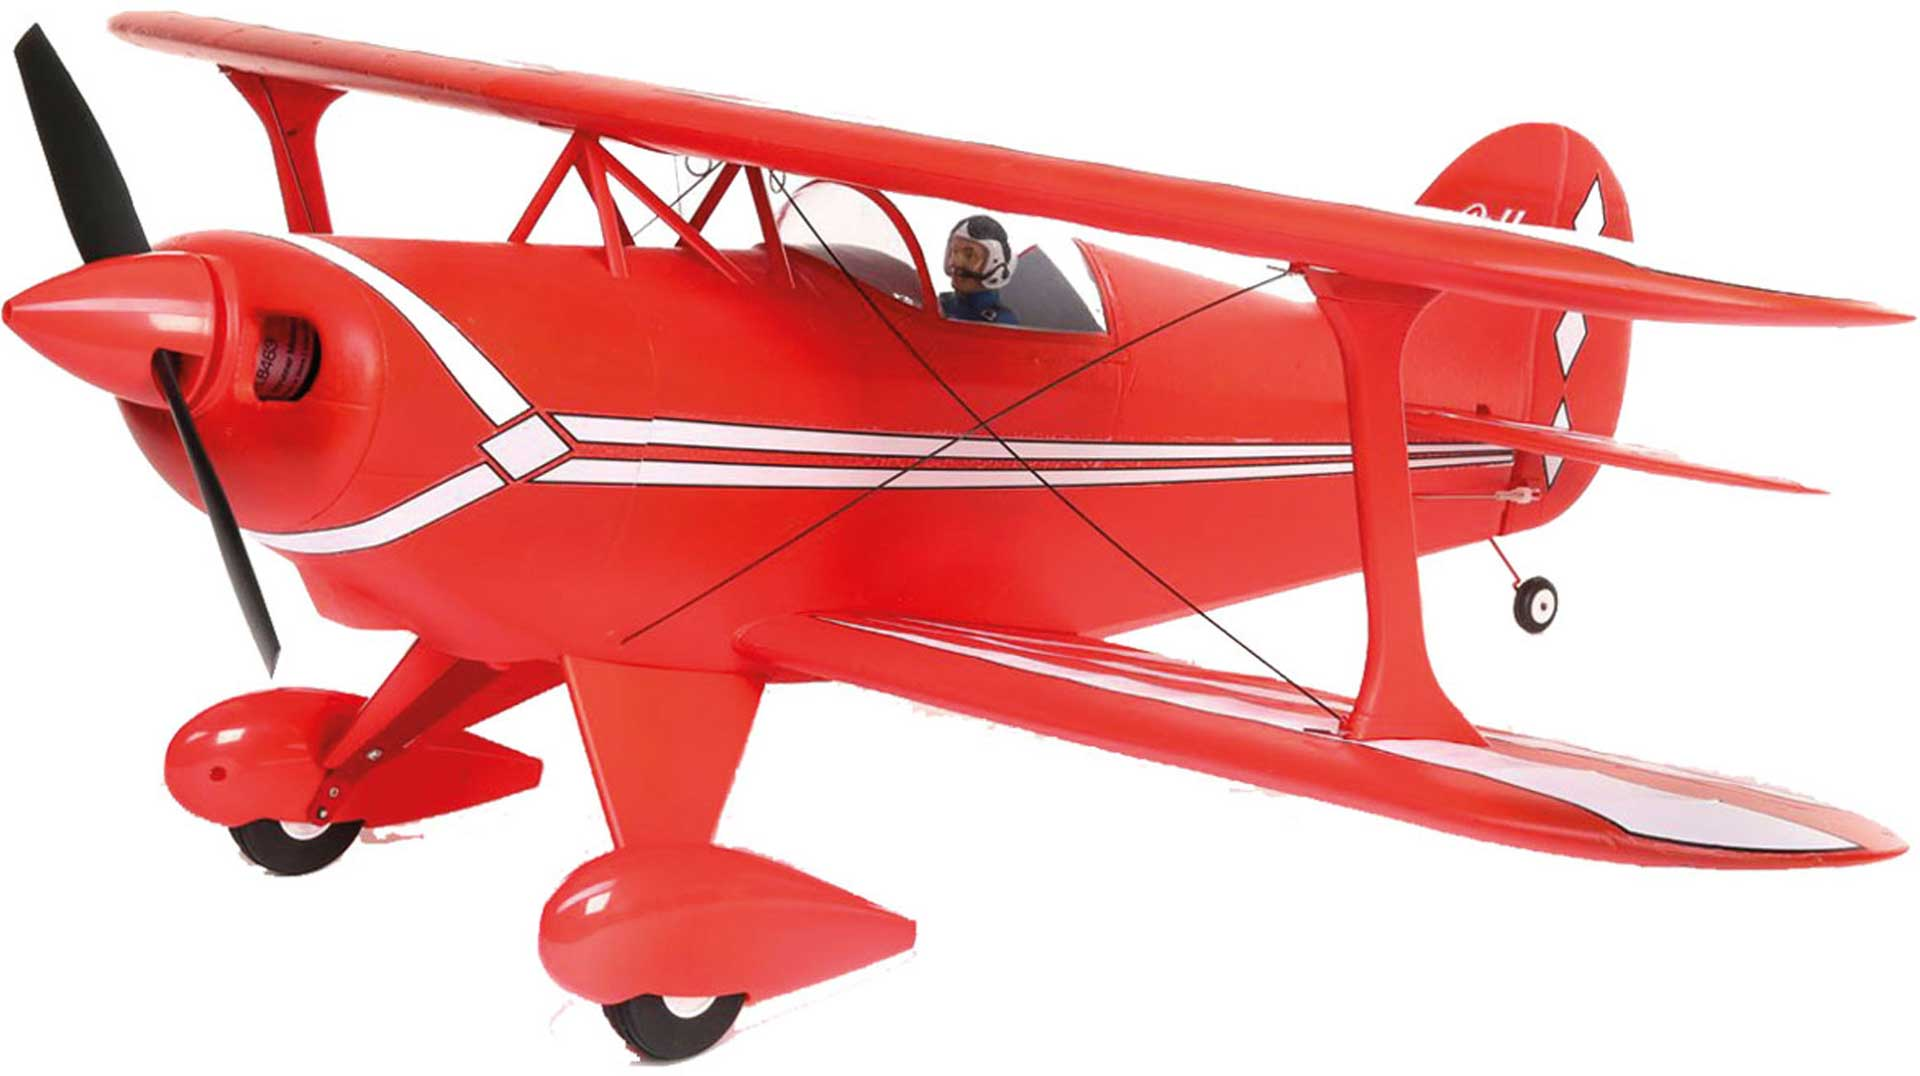 E-Flite Pitts 850mm BNF Basic w/ AS3X/SAFE Select